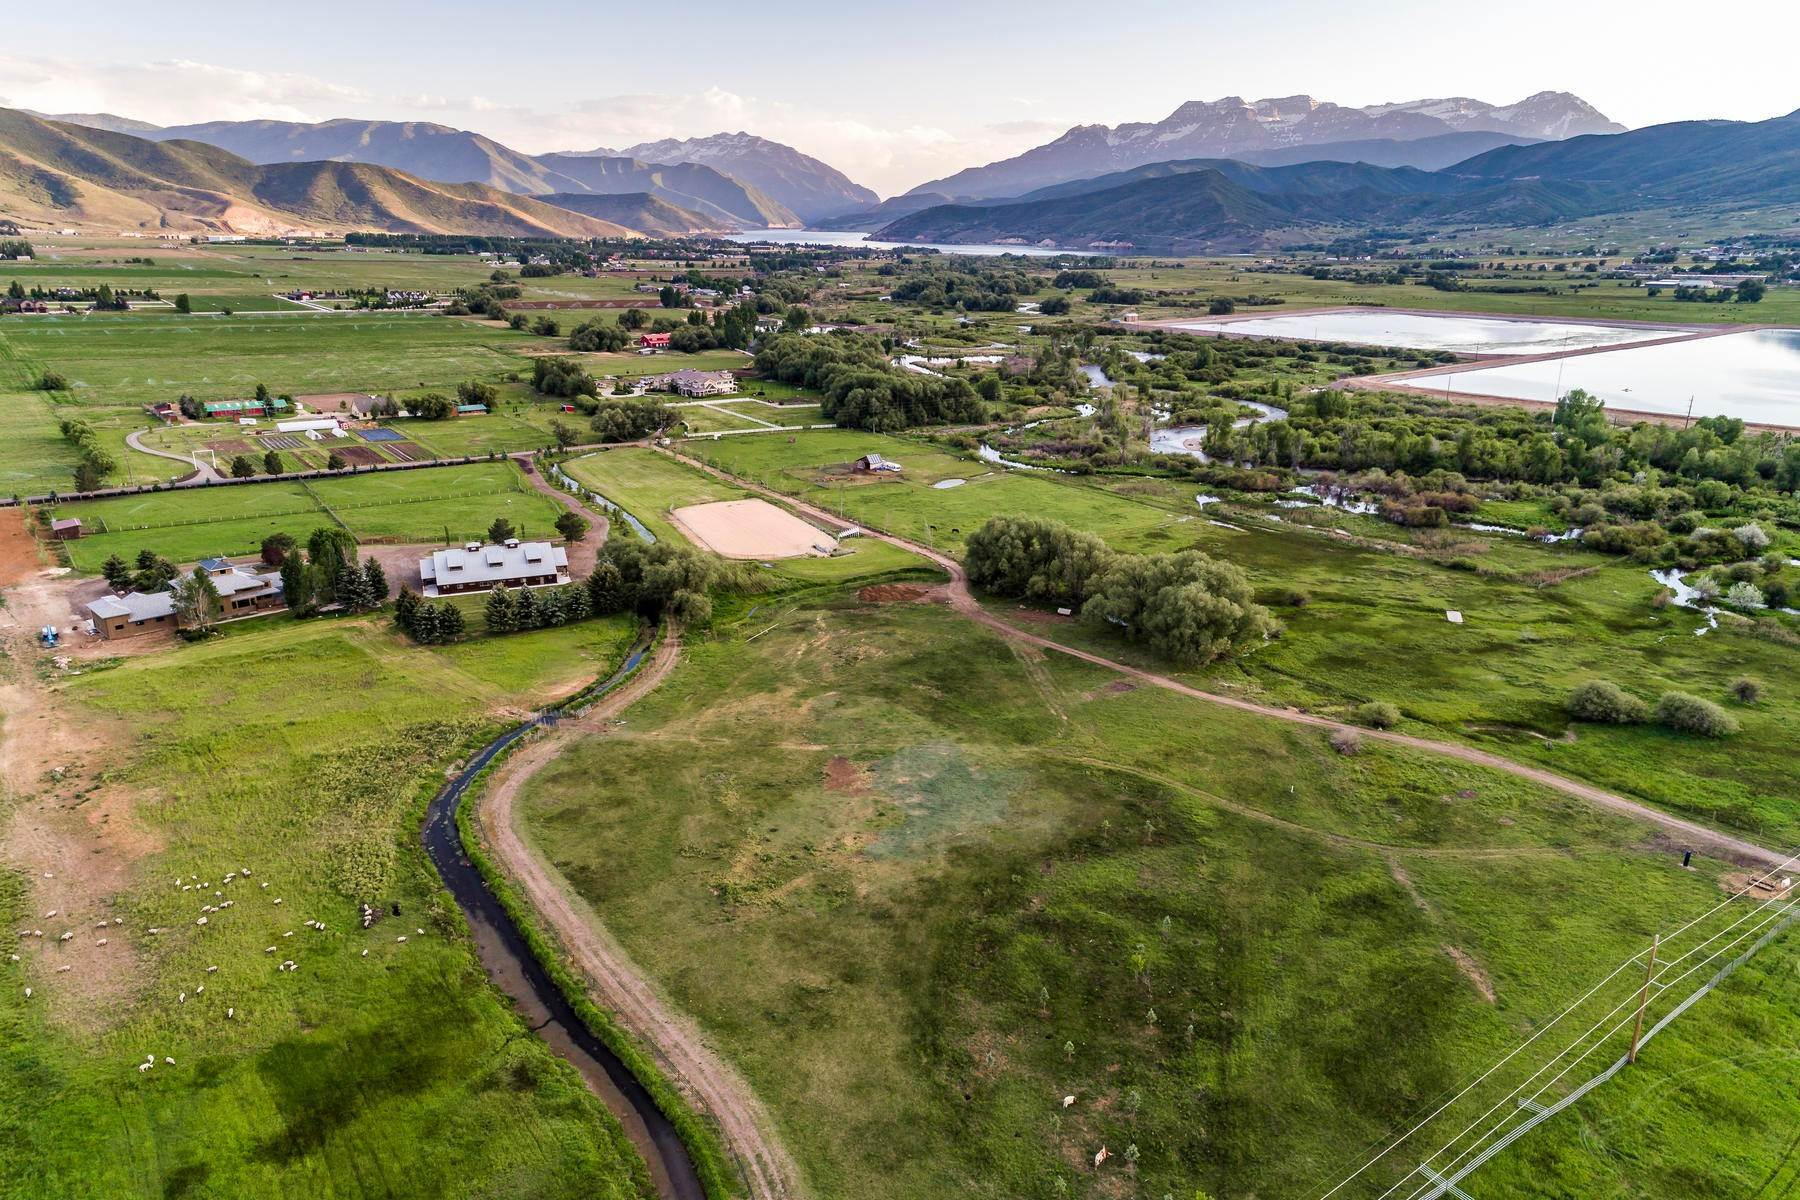 Terreno per Vendita alle ore Beautiful 7.68 Acre Lot Near The Provo River 1500 W Midway Ln, #9 Heber, Utah 84032 Stati Uniti